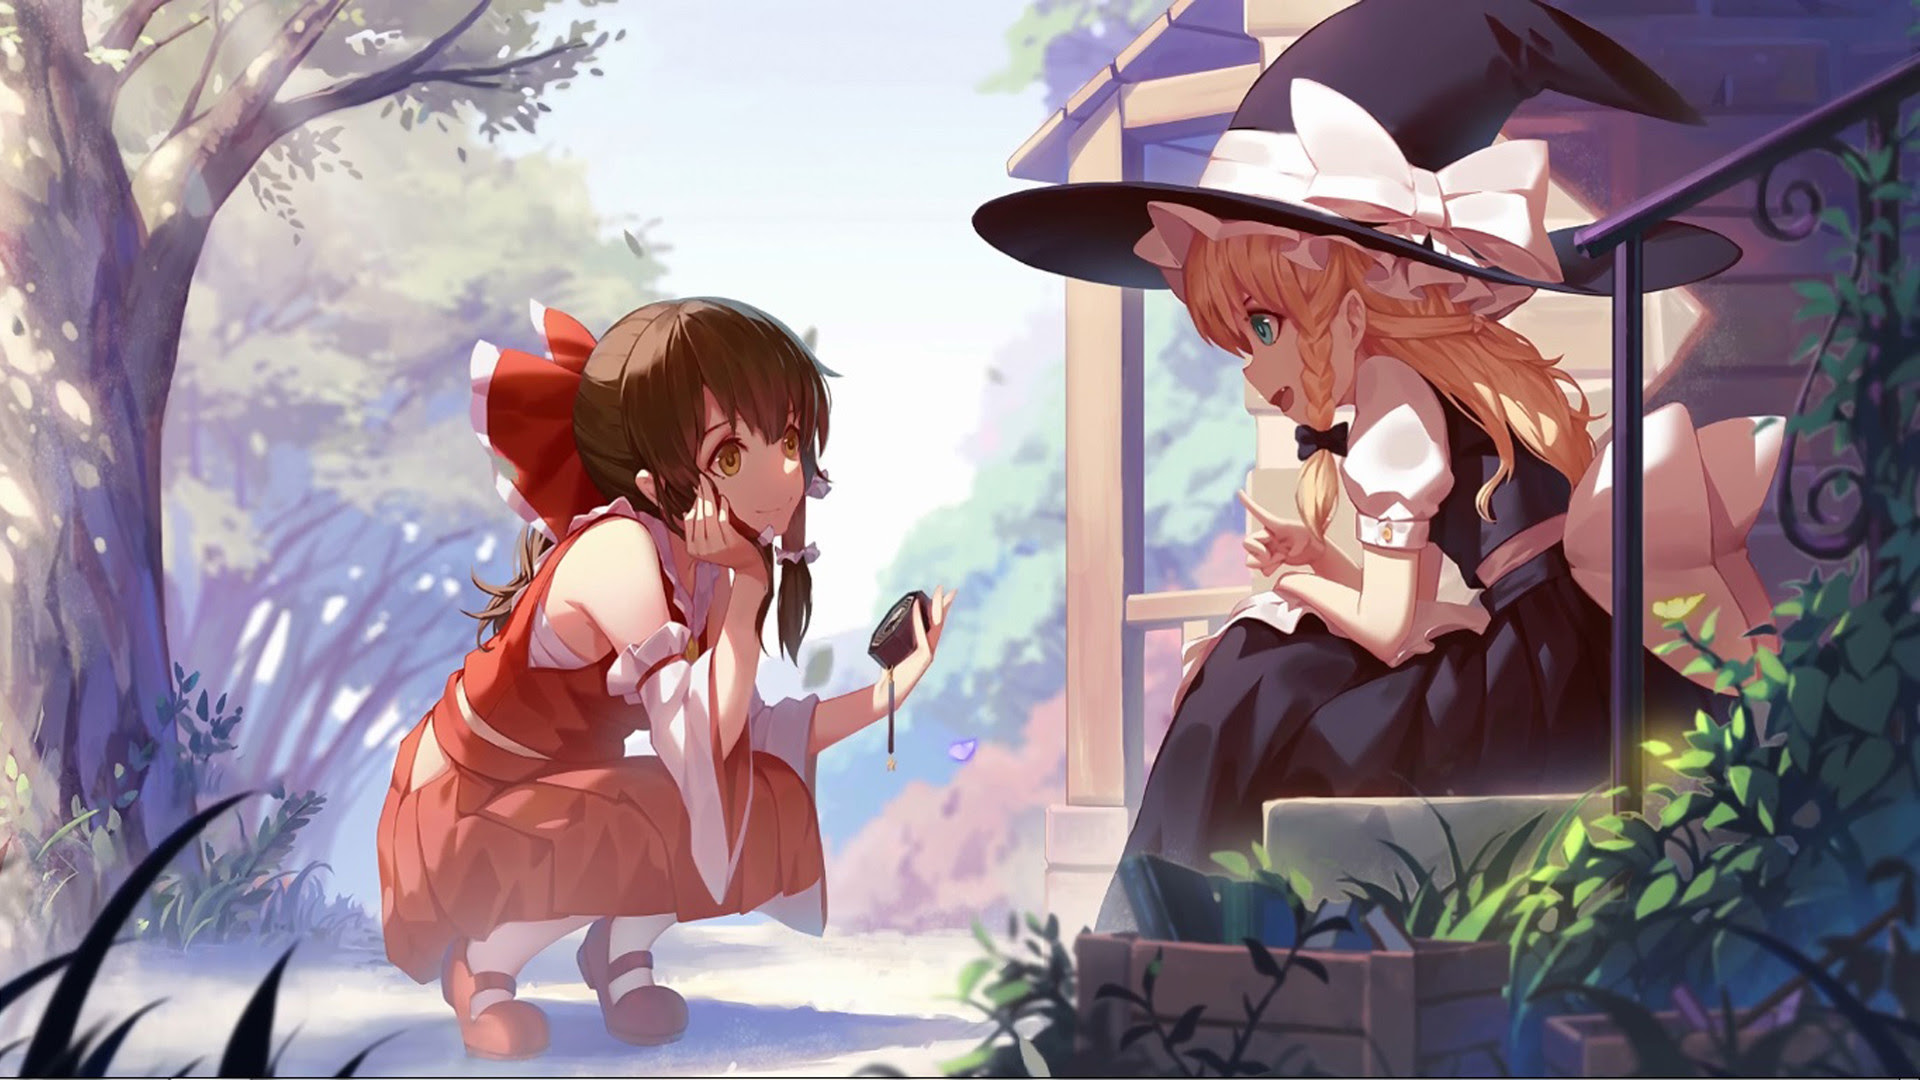 Peaceful Anime Wallpaper (80+ images)